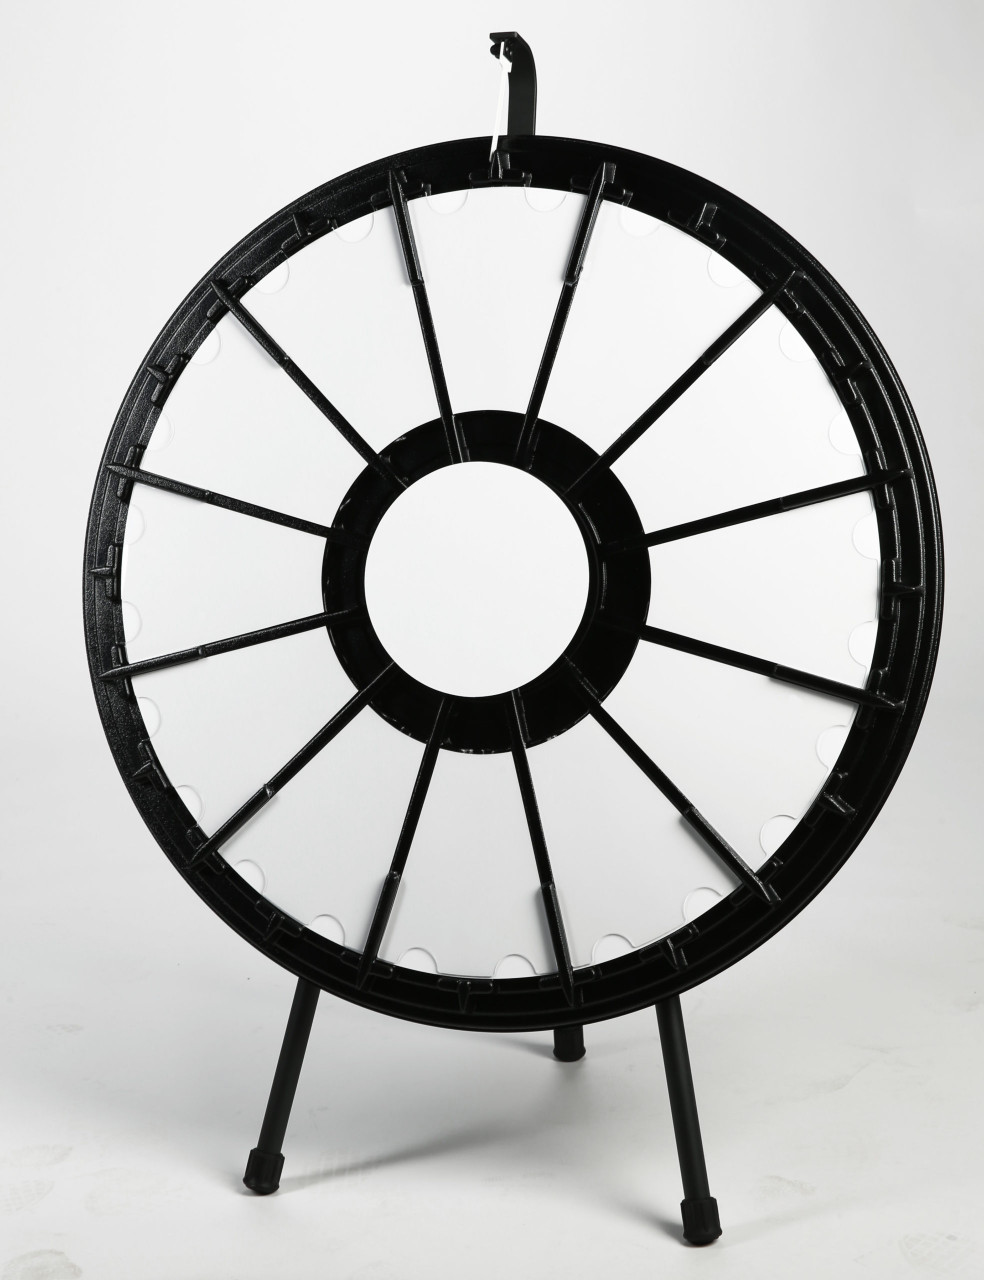 Prize Wheel (12-pocket, 31 in.; on Tabletop. Blank sections